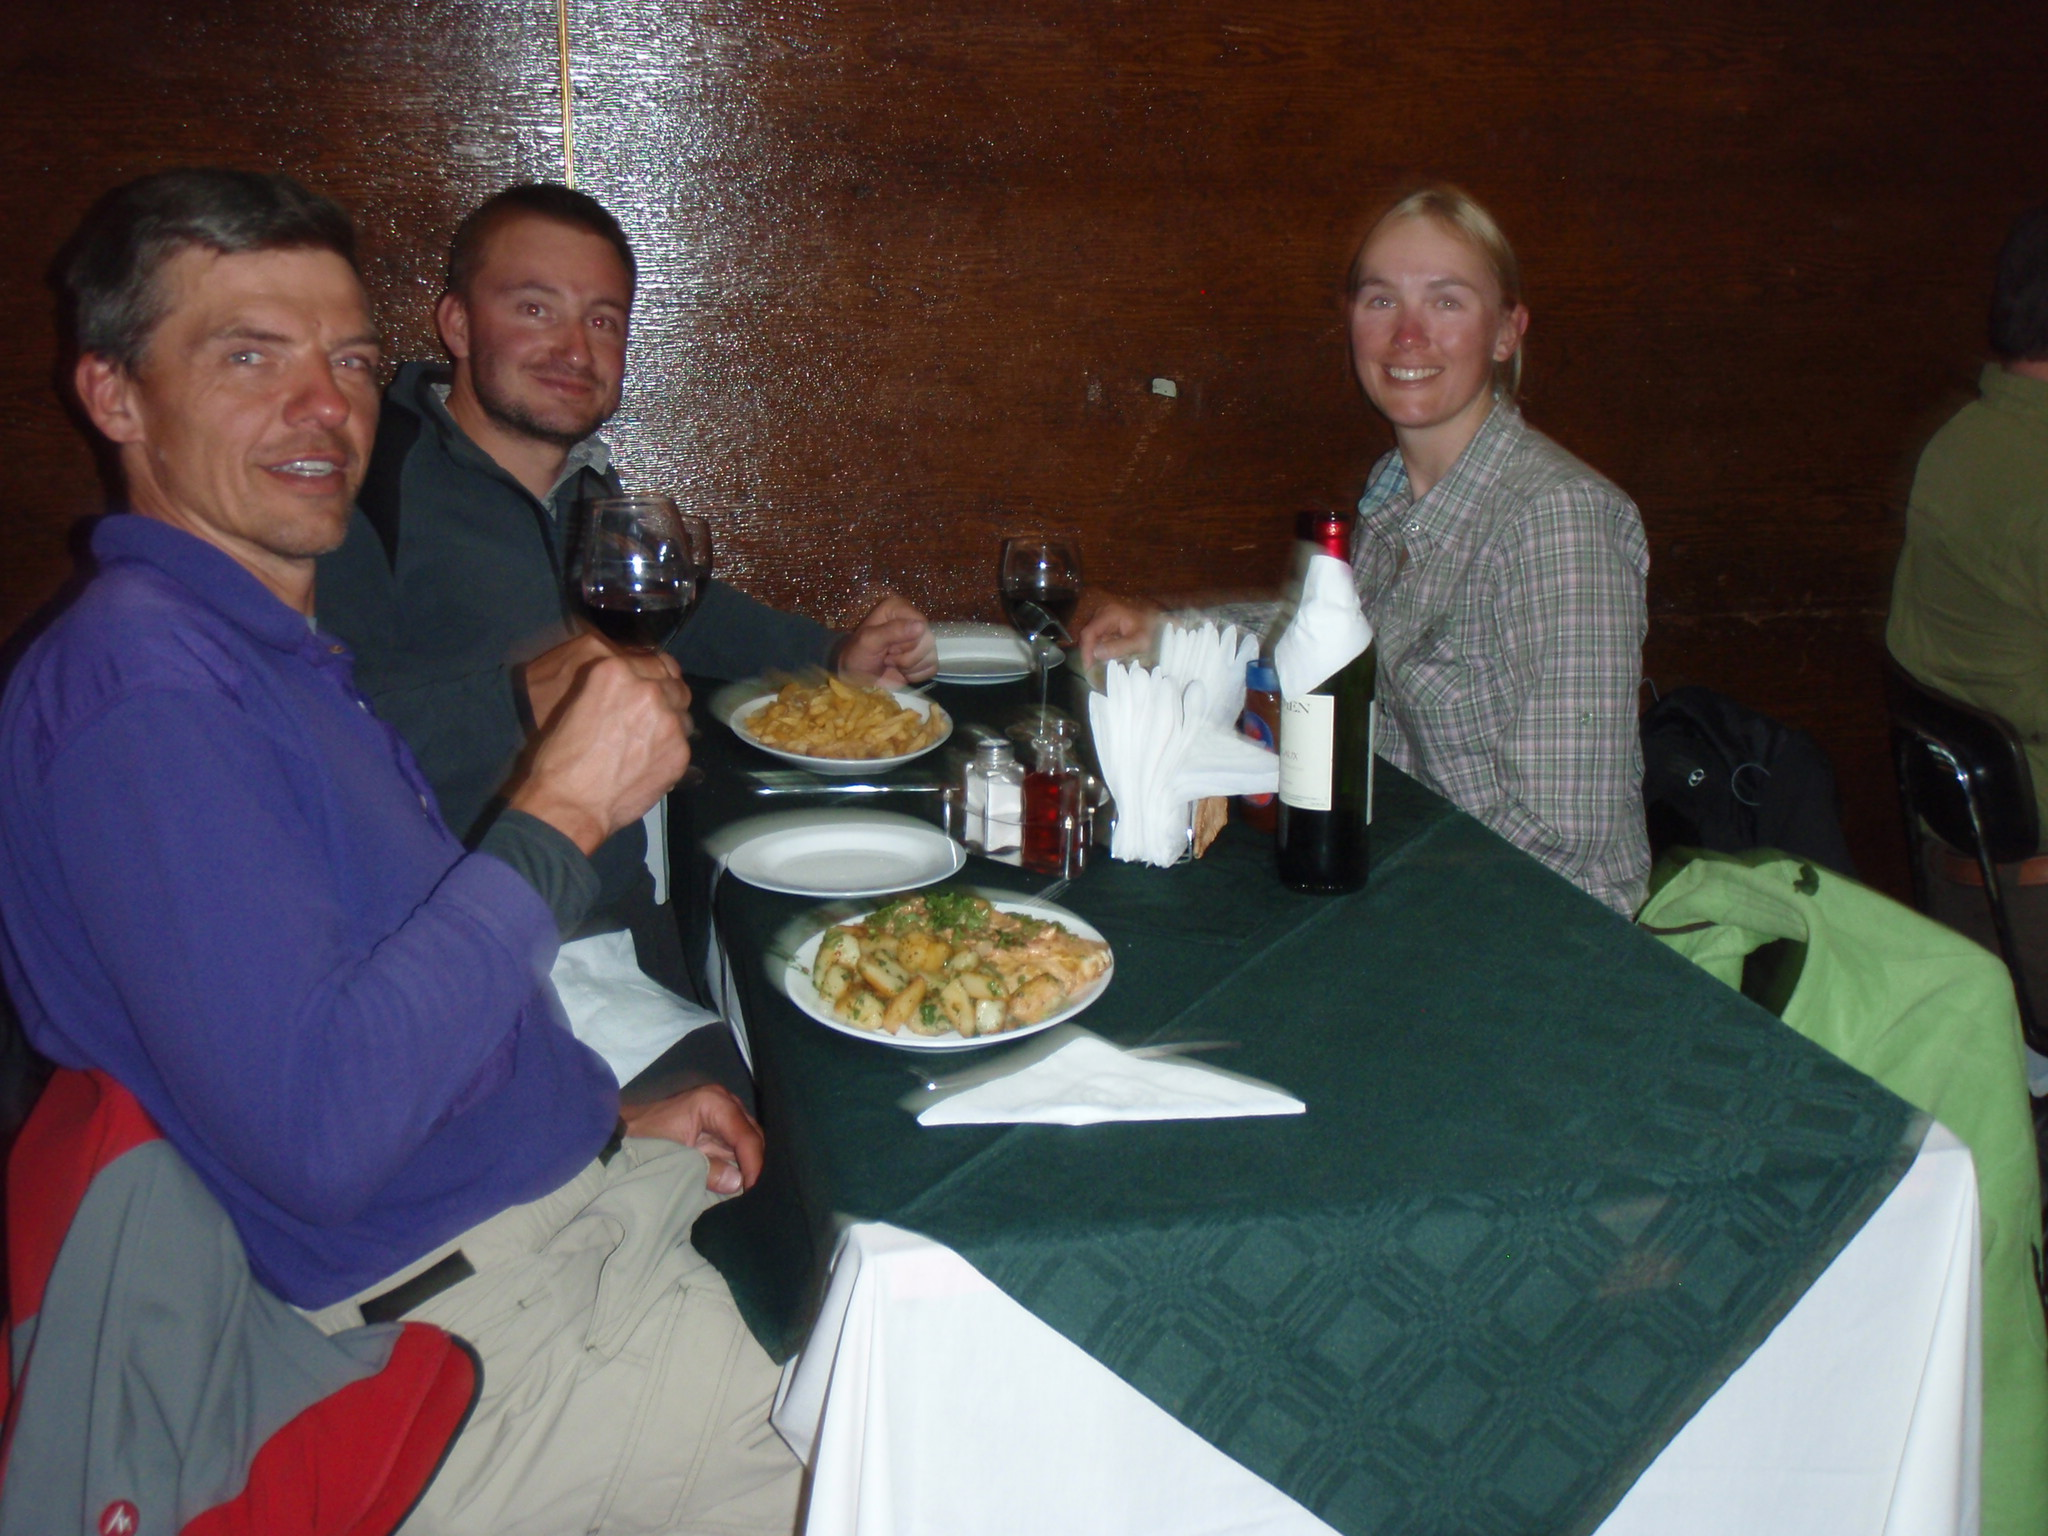 Chatting with Belgian cyclists Ellen and Nicolas about the Carreterra Austral over dinner in Coyhaique